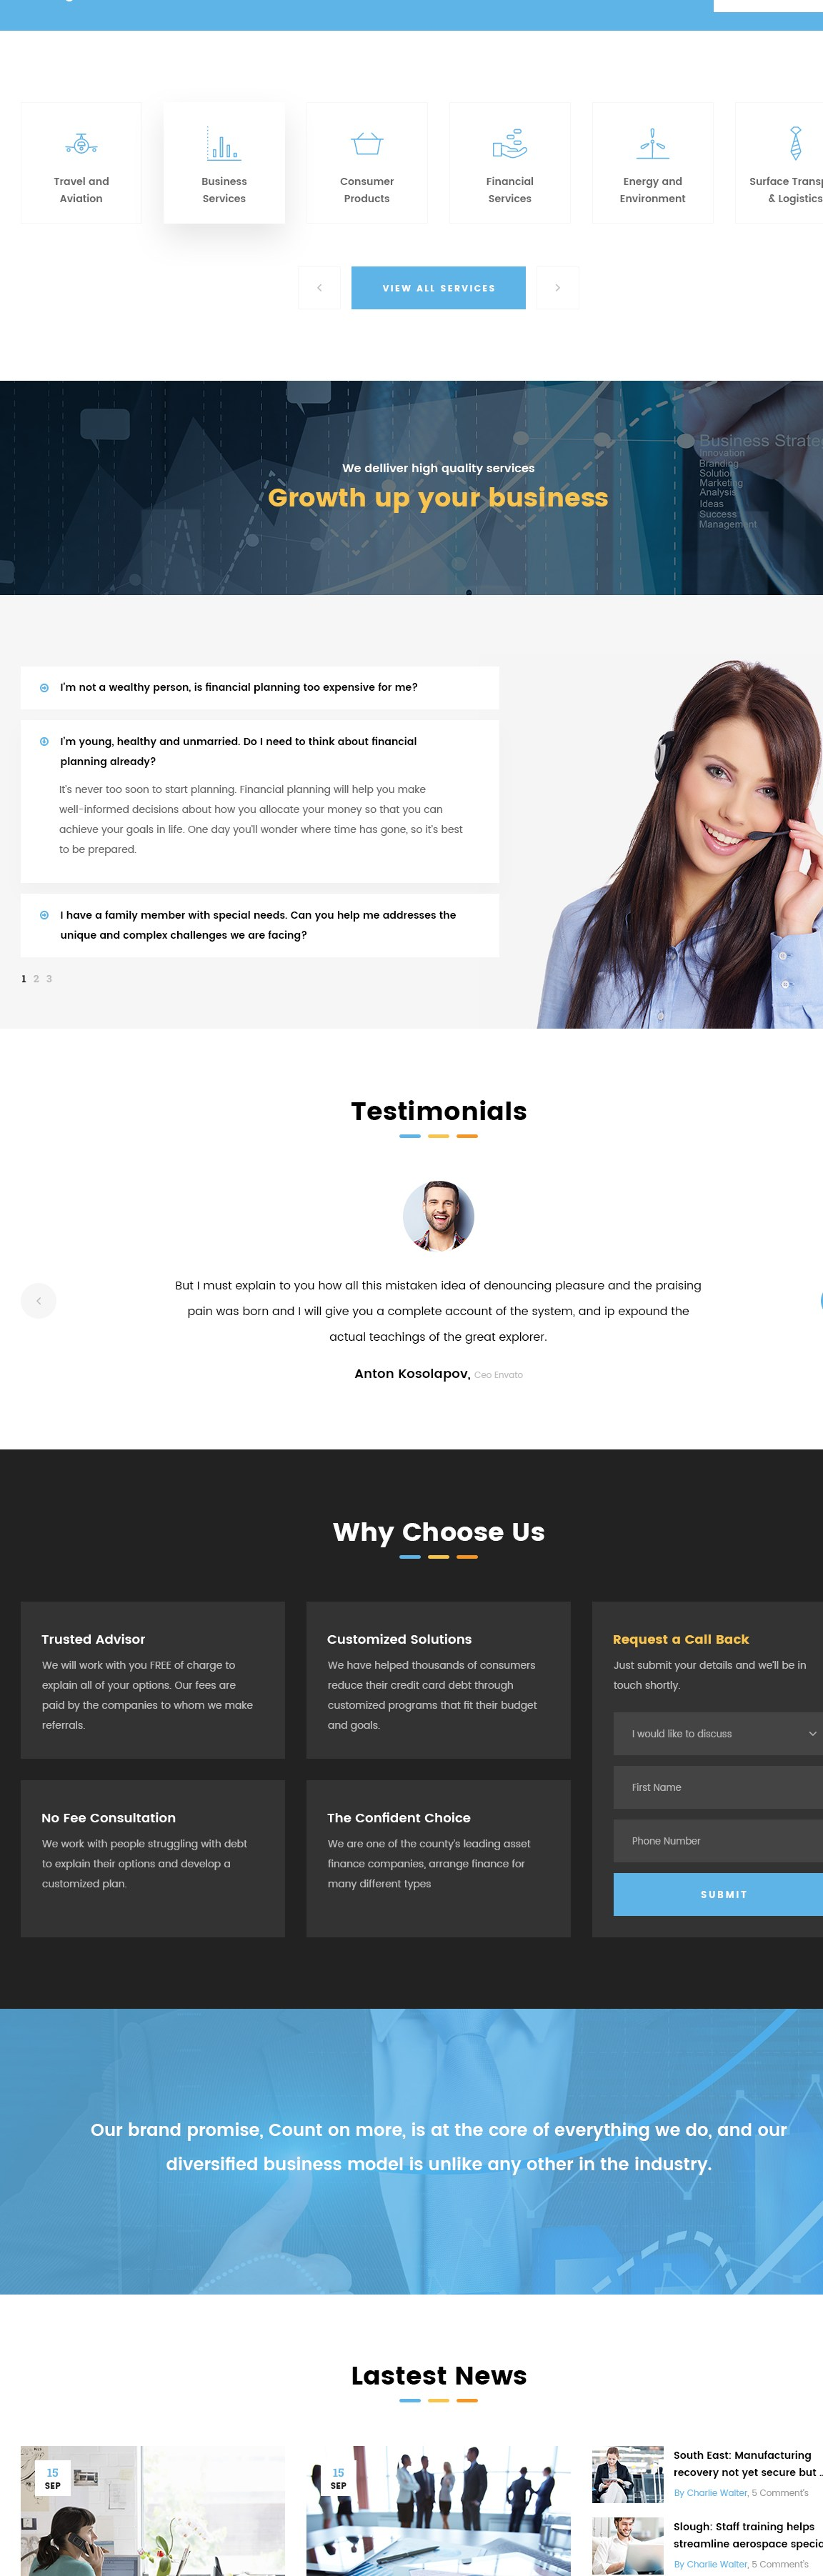 Grabs Full Pixels » Financial Solutions   Financial   Business PSD Template by AlitStudio Financial Solutions   Financial   Business PSD Template   Business  Corporate  Preview 00 Preview jpg Preview 01 Home 01 jpg  Preview 02 Home 02 jpg